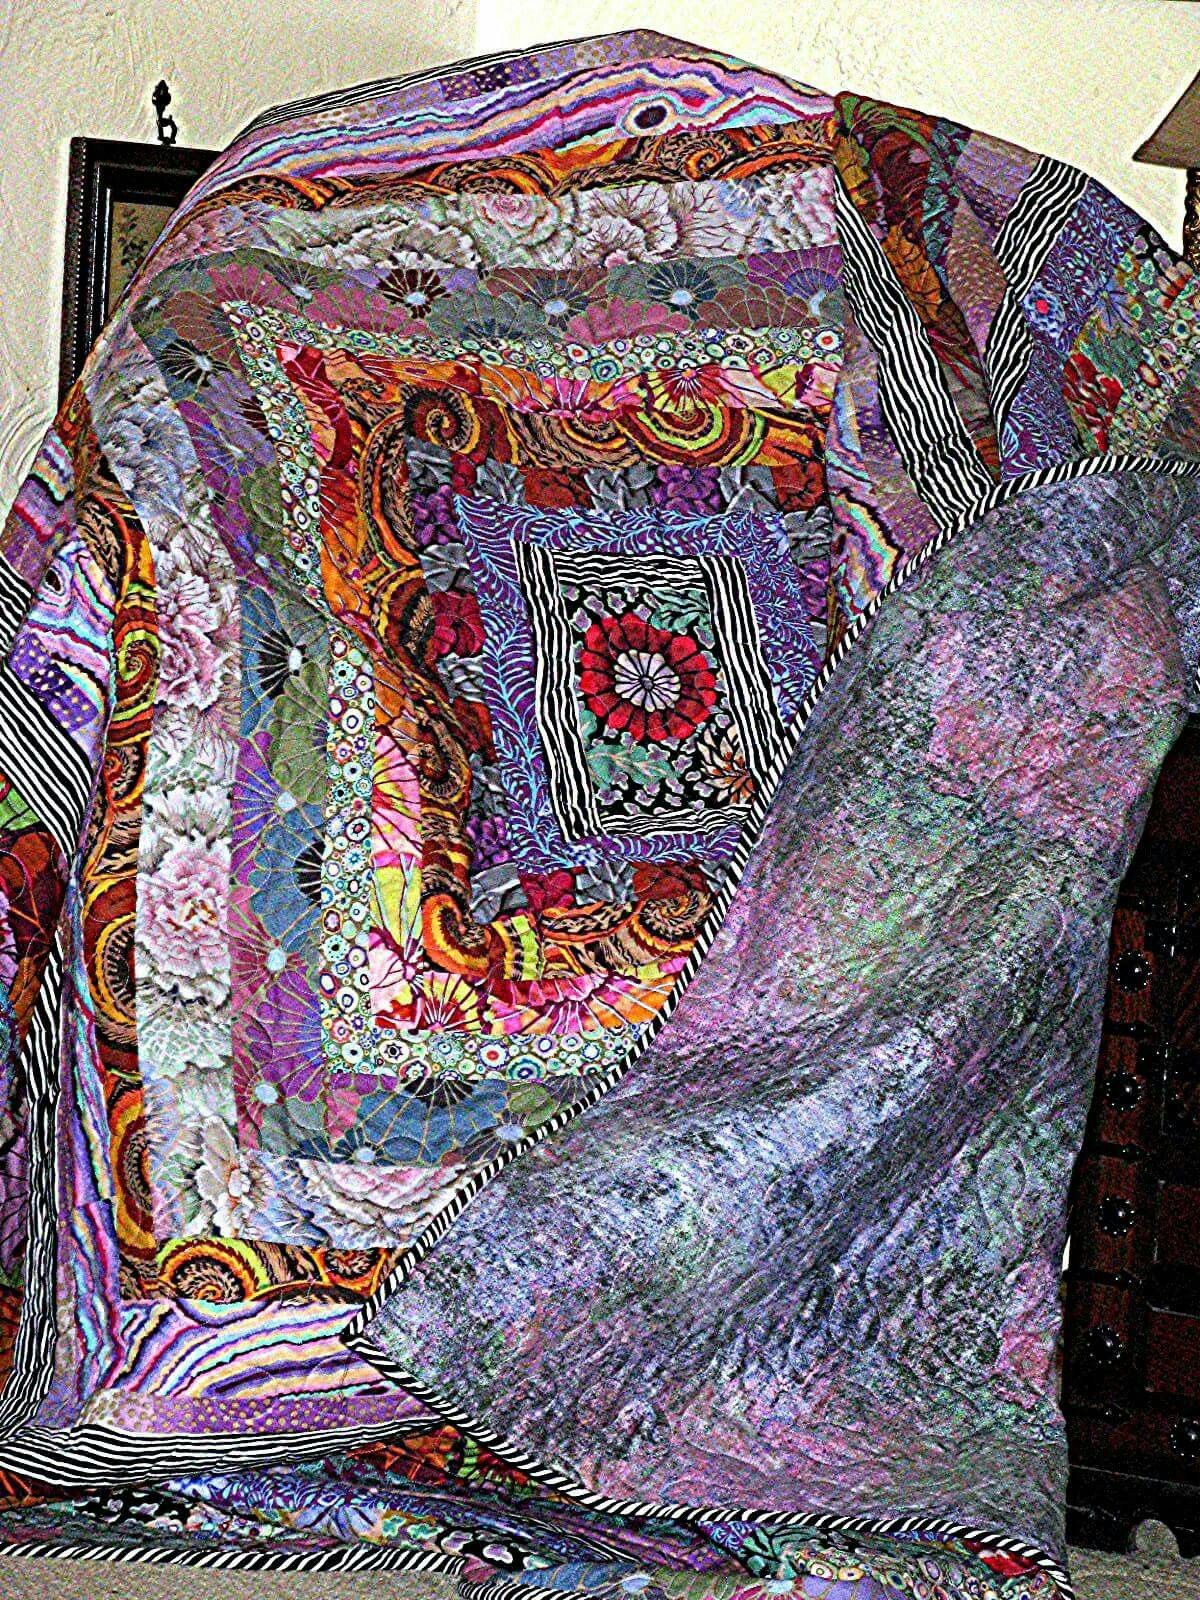 Quilts Of Italy 84 Kit With Images Colorful Quilts Kaffe Fassett Quilts Quilts